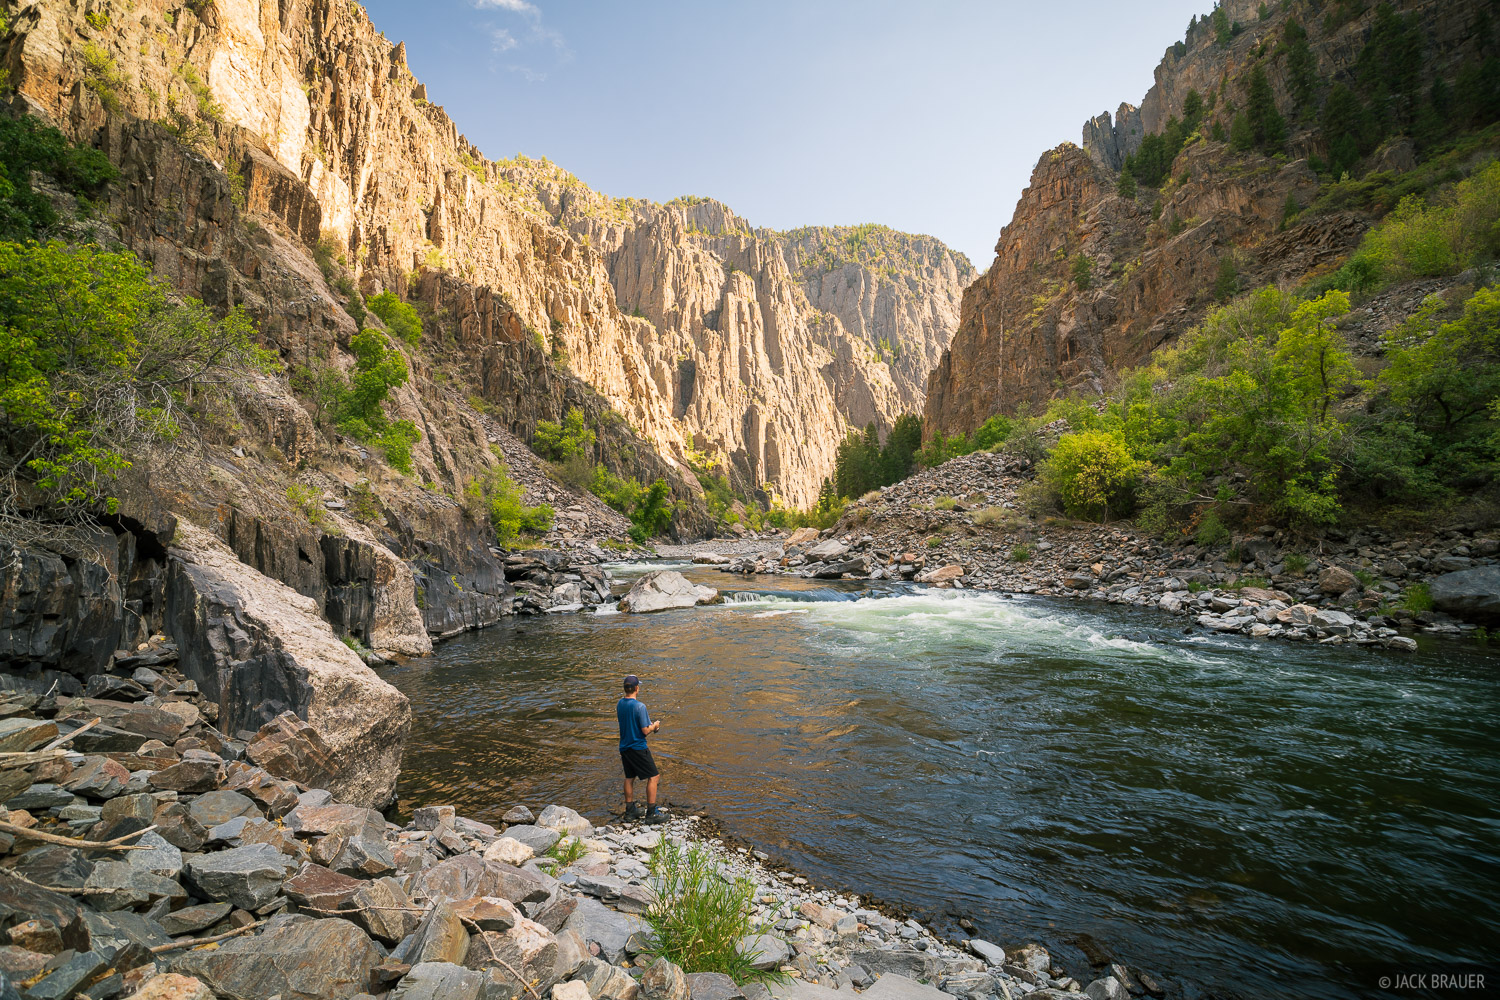 Fishing in the Gunnison River at the bottom of the Black Canyon.